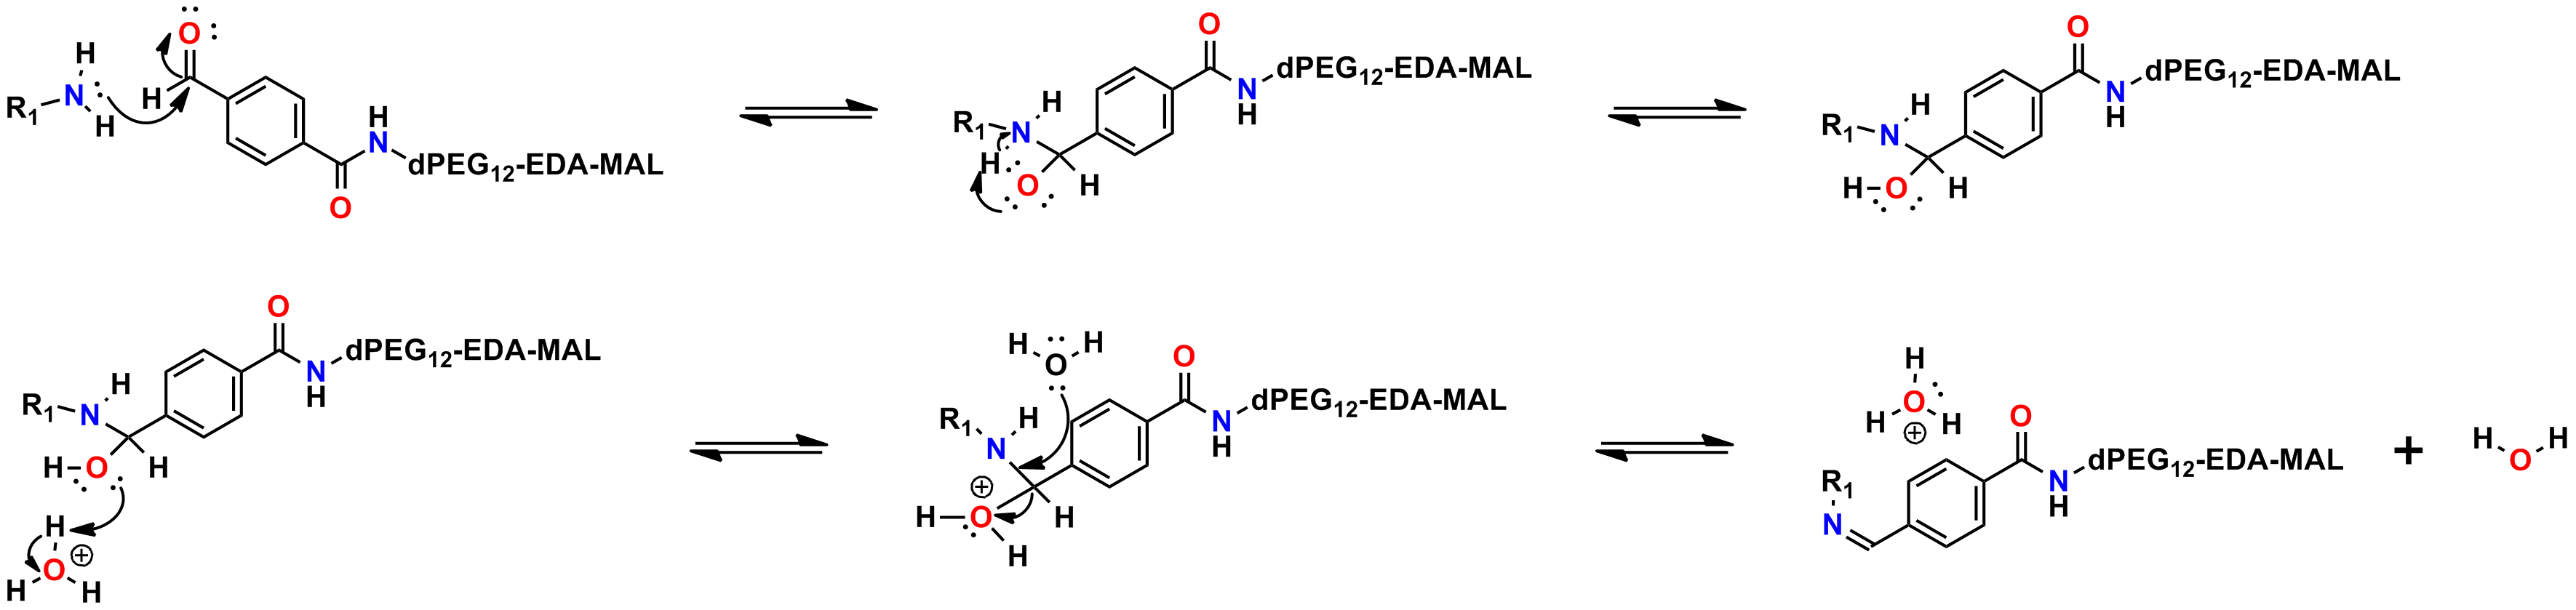 Figure 8 shows how PN10075, 4-formyl-benzamido-dPEG®12-MAL, reacts with an amine to form an imine (Schiff base). Electron movement is indicated by arrows.